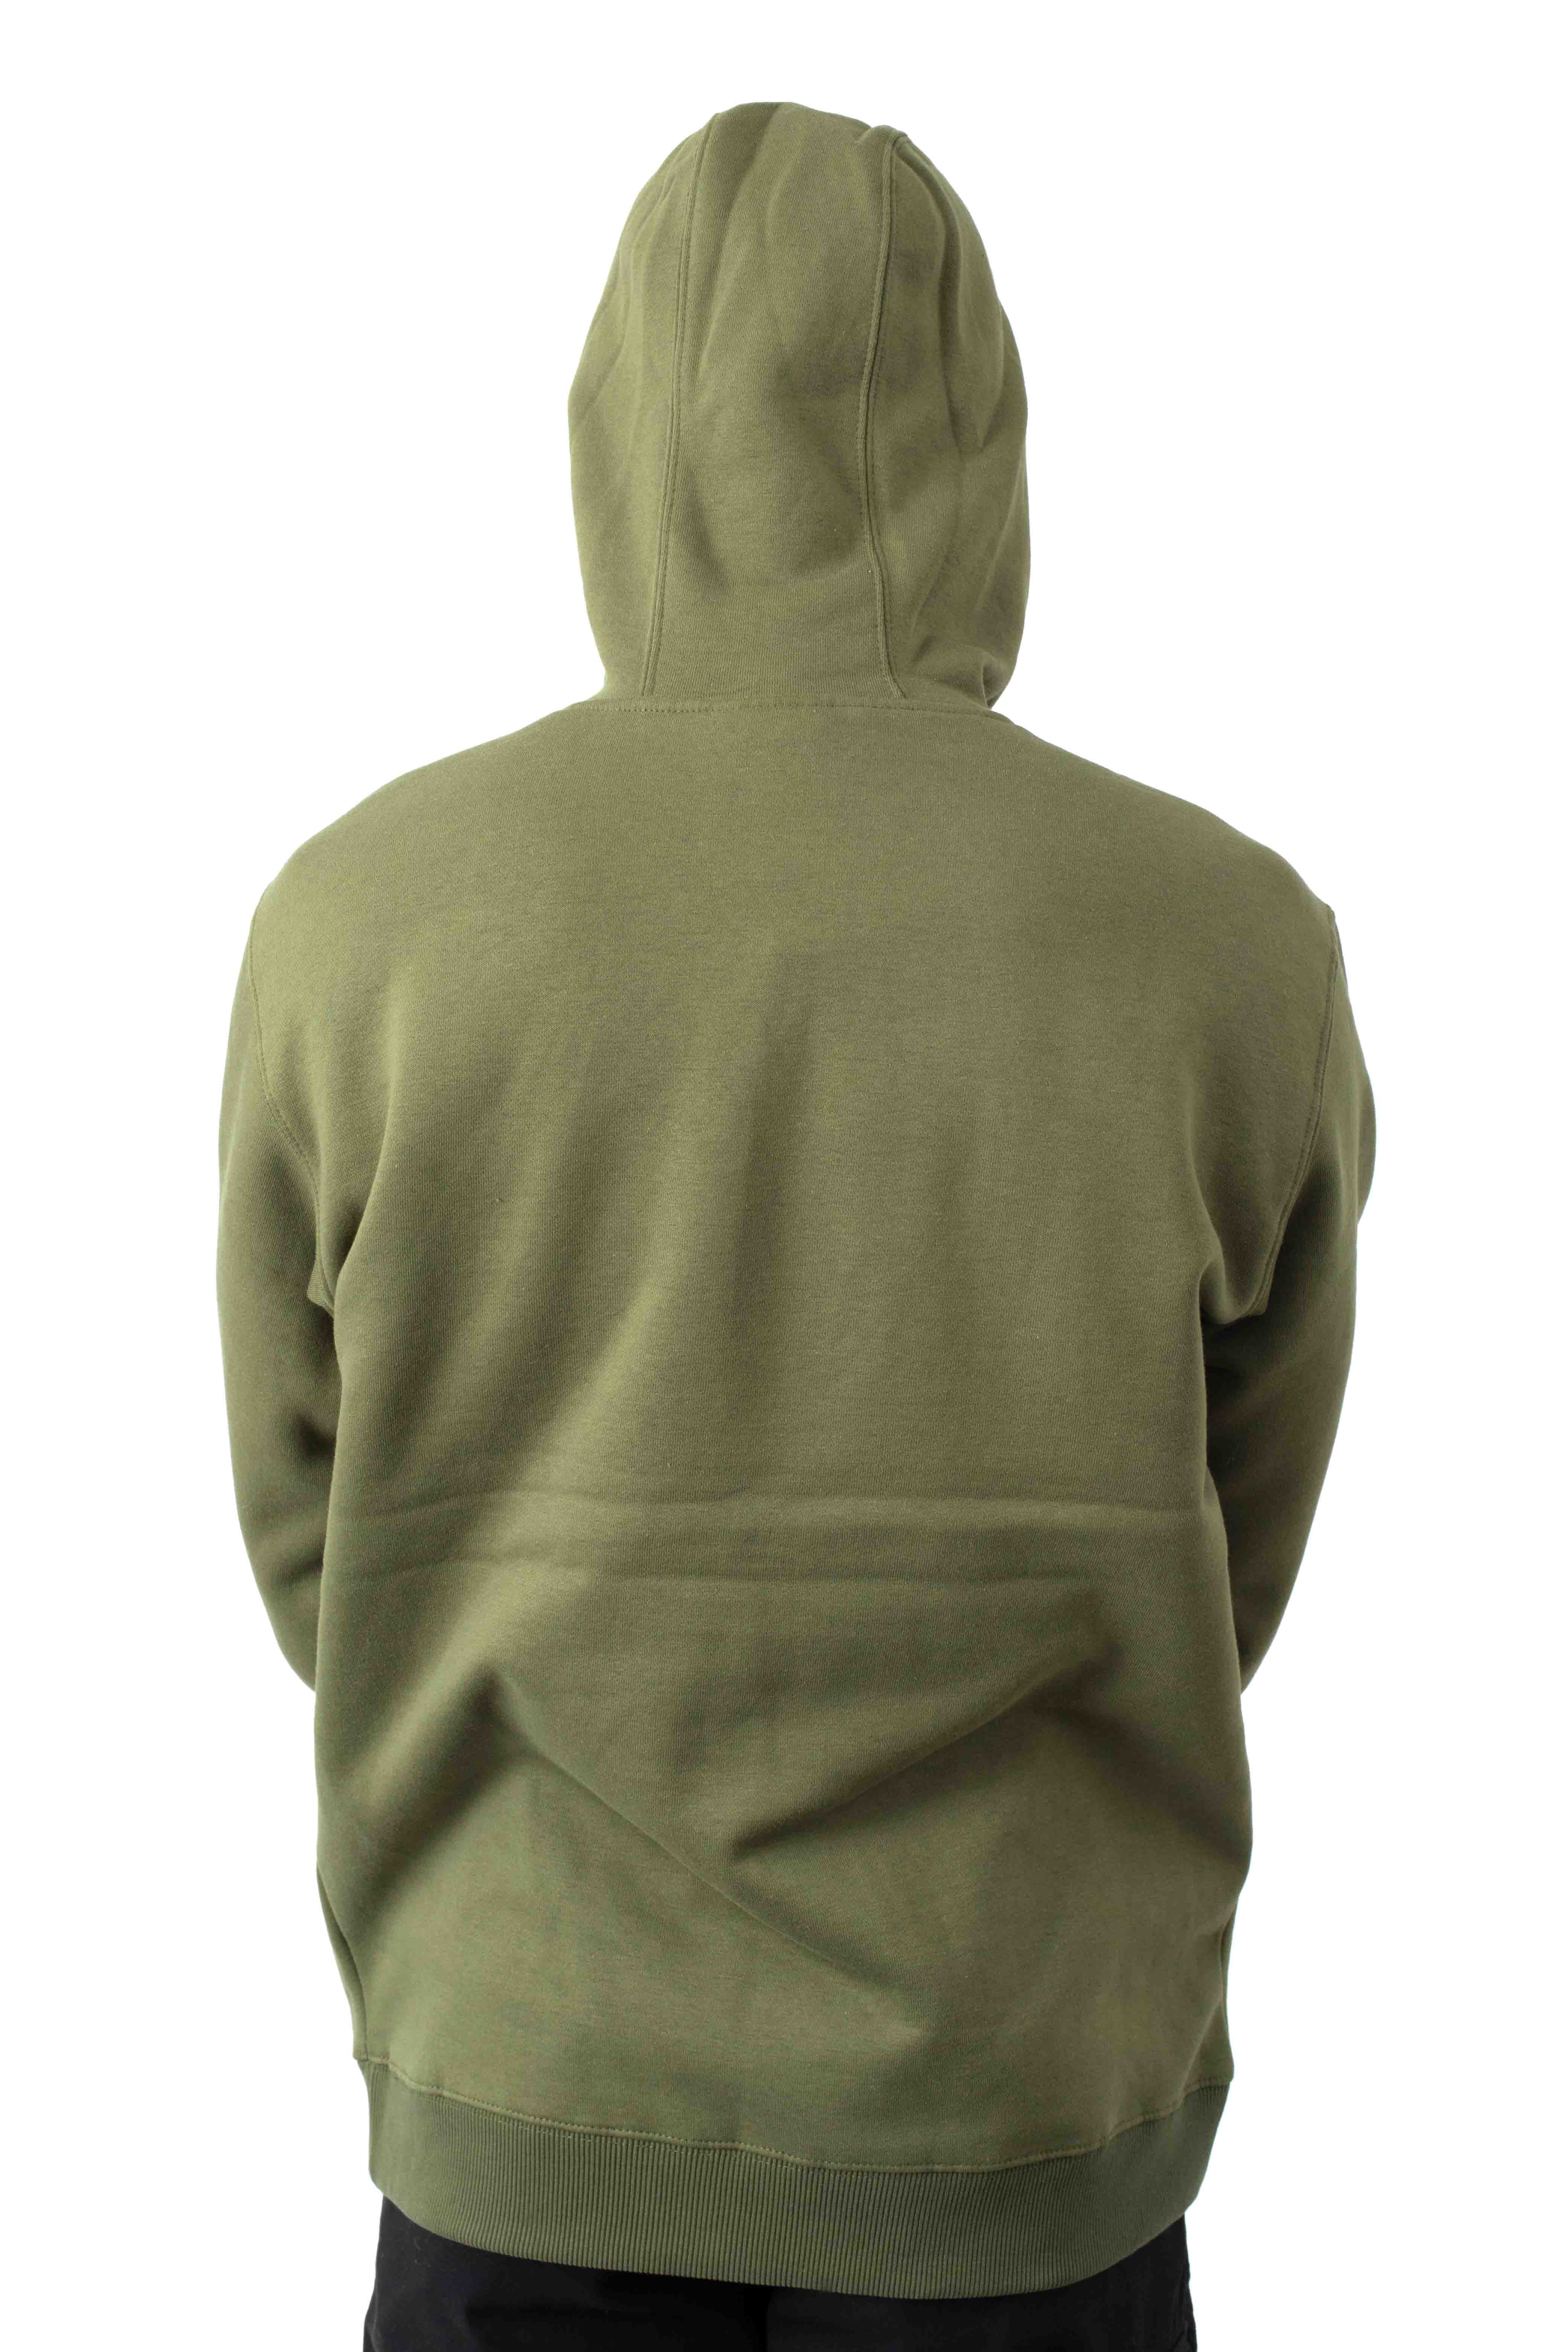 (TW45AML) Relaxed Fit Logo Fleece Pullover Hoodie - Military Green 4